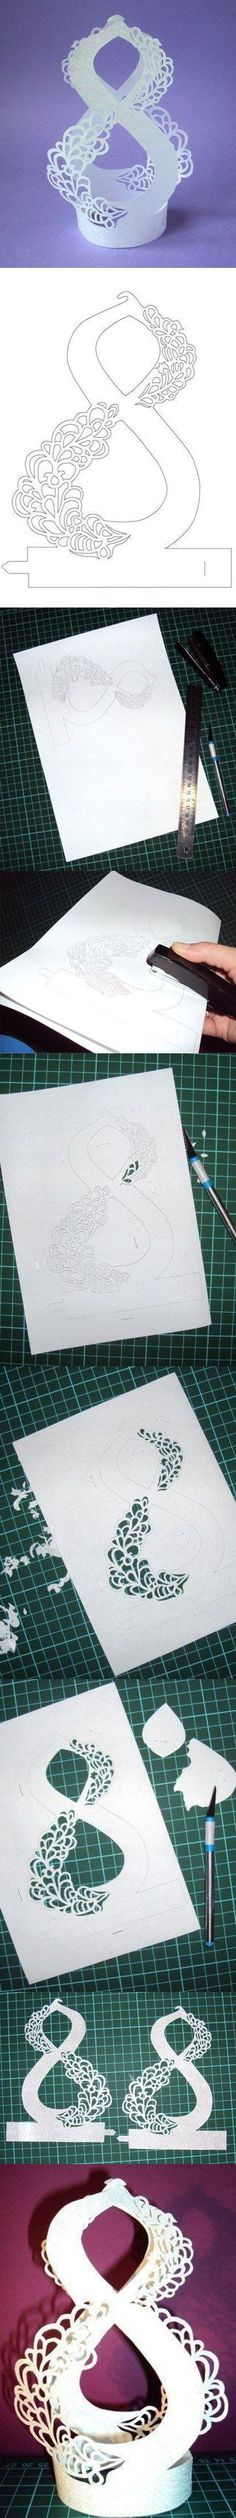 Amazing paper cut template